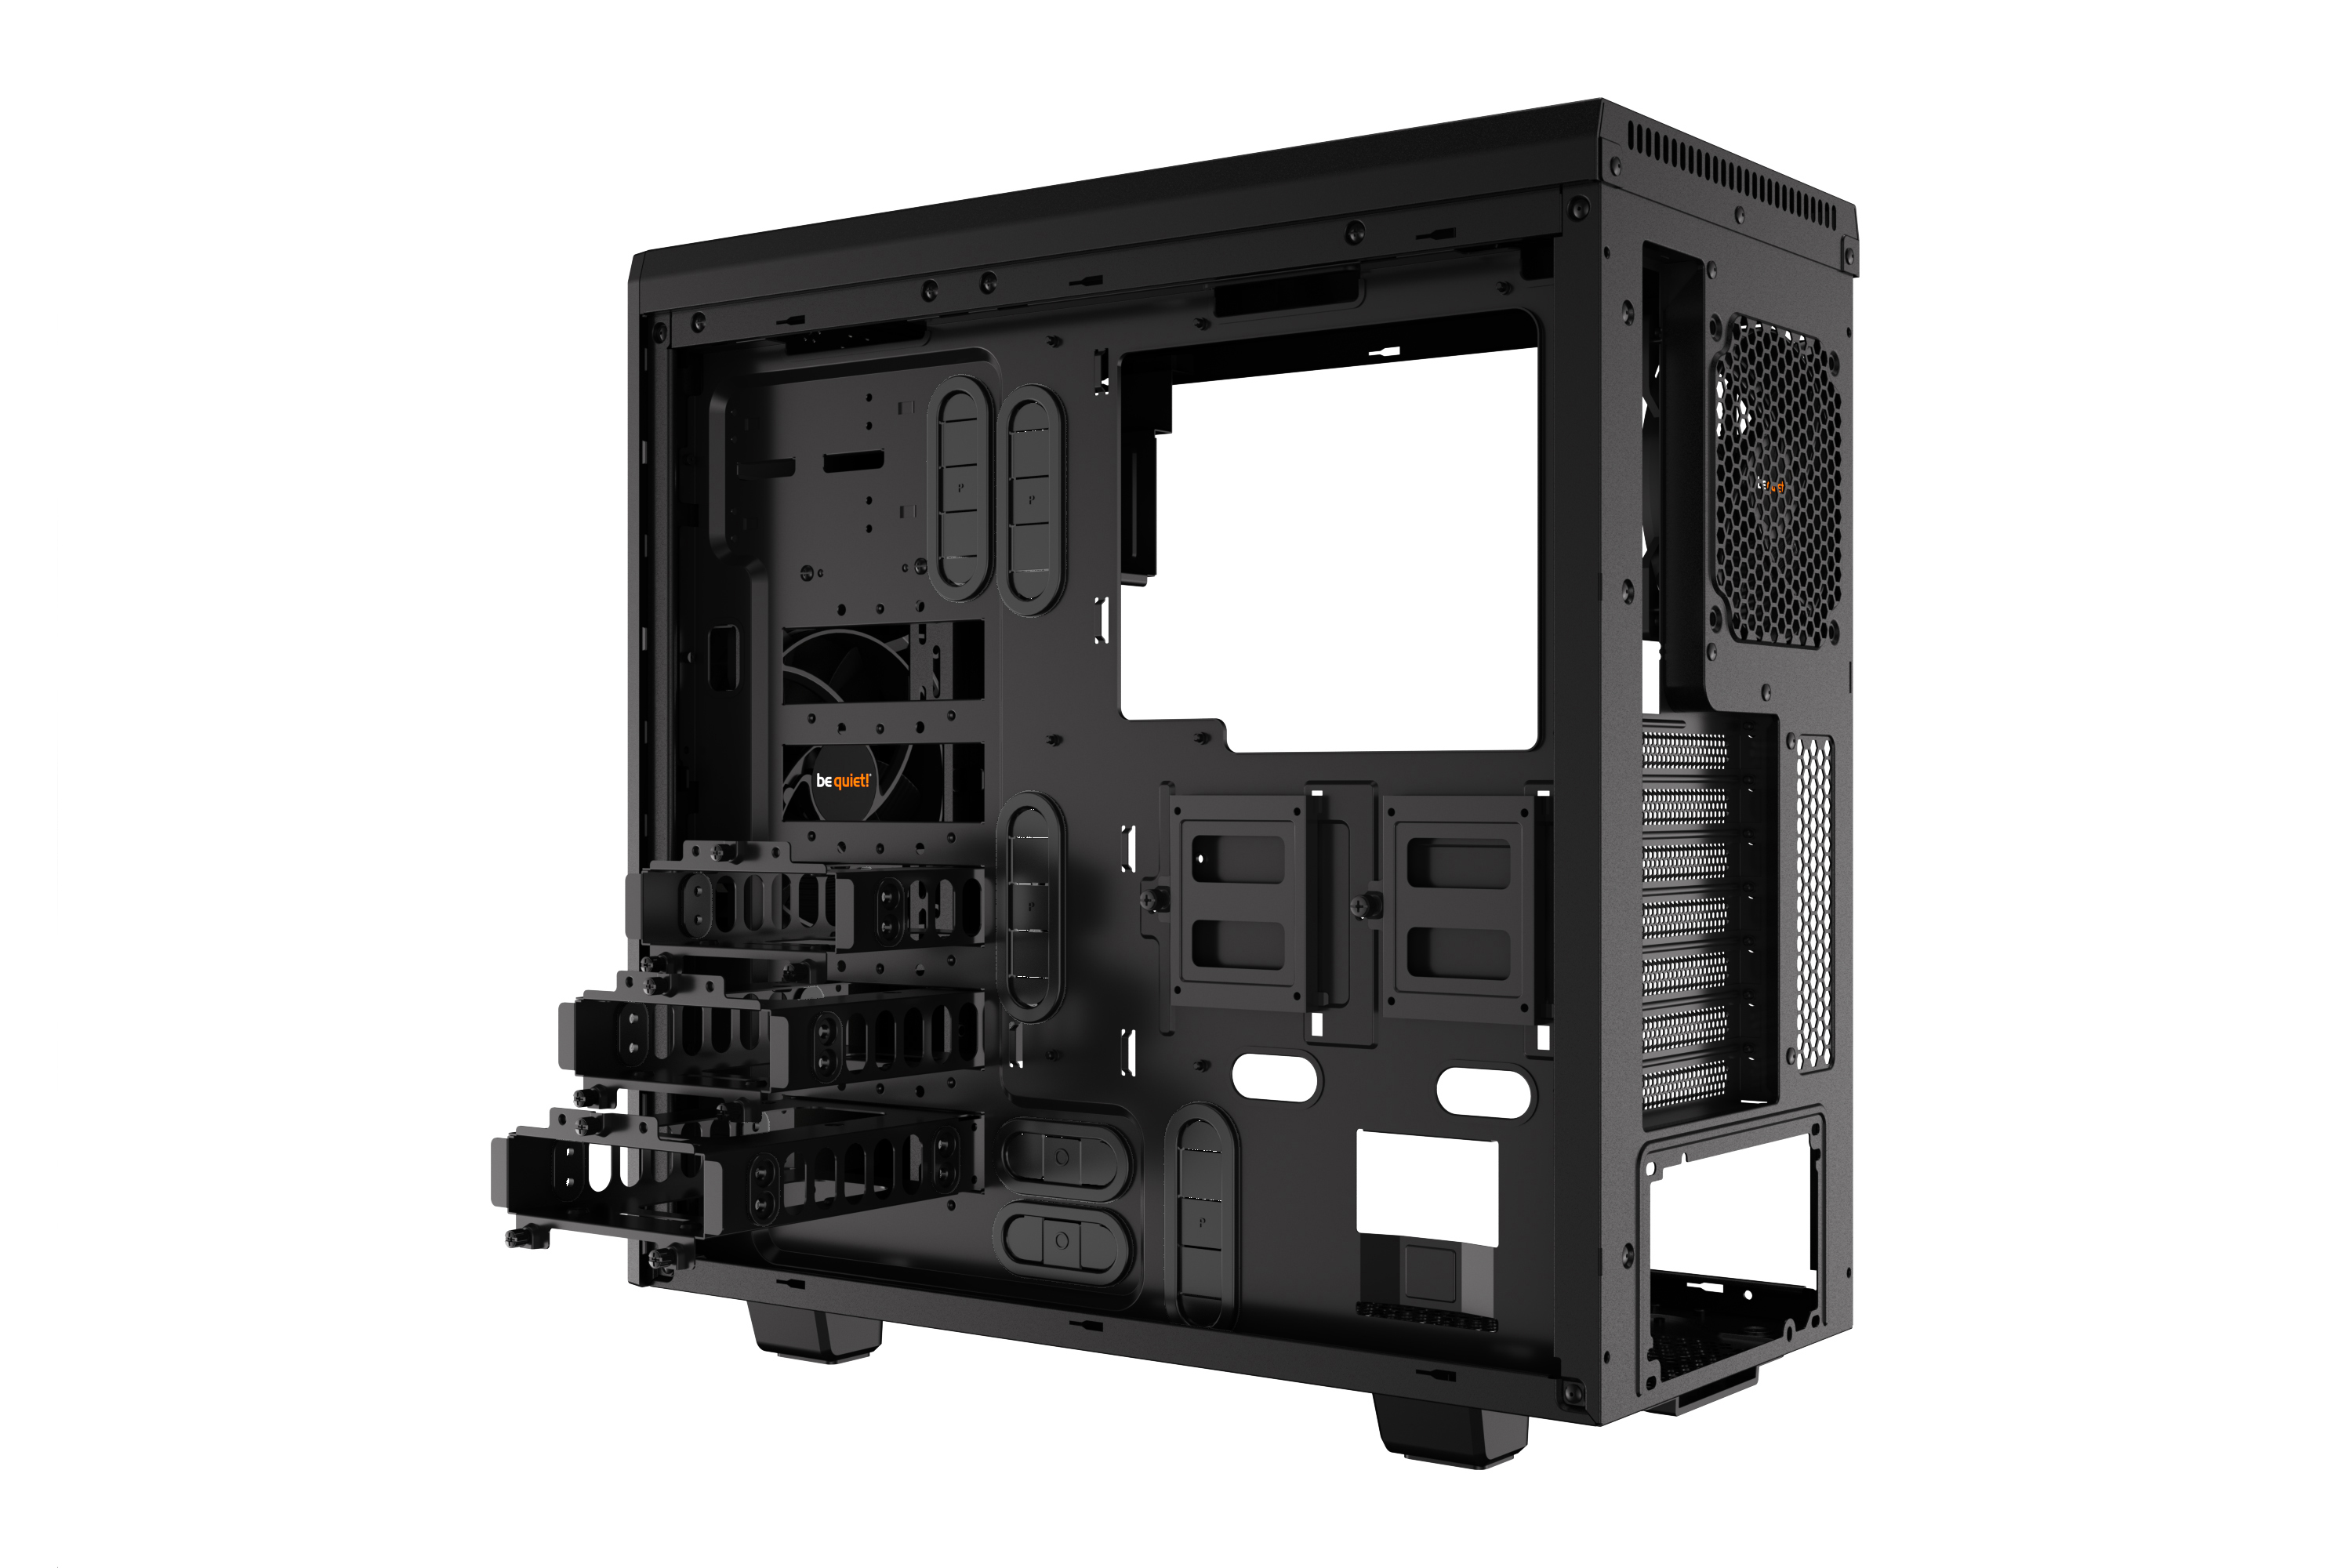 be quiet! Pure Base 600 Window Black, 492 x 220 x 470, IO-panel 2x USB 3.0, HD Audio, 2x 5,25, 3x 3,5, 2x 2,5, inc 1x 140 mm en 1x 120 mm Pure Wings 2, dual air channel cooling, 3 step fan controller 3x3 pin, Watercooling ready, Glass Windows Side Panel